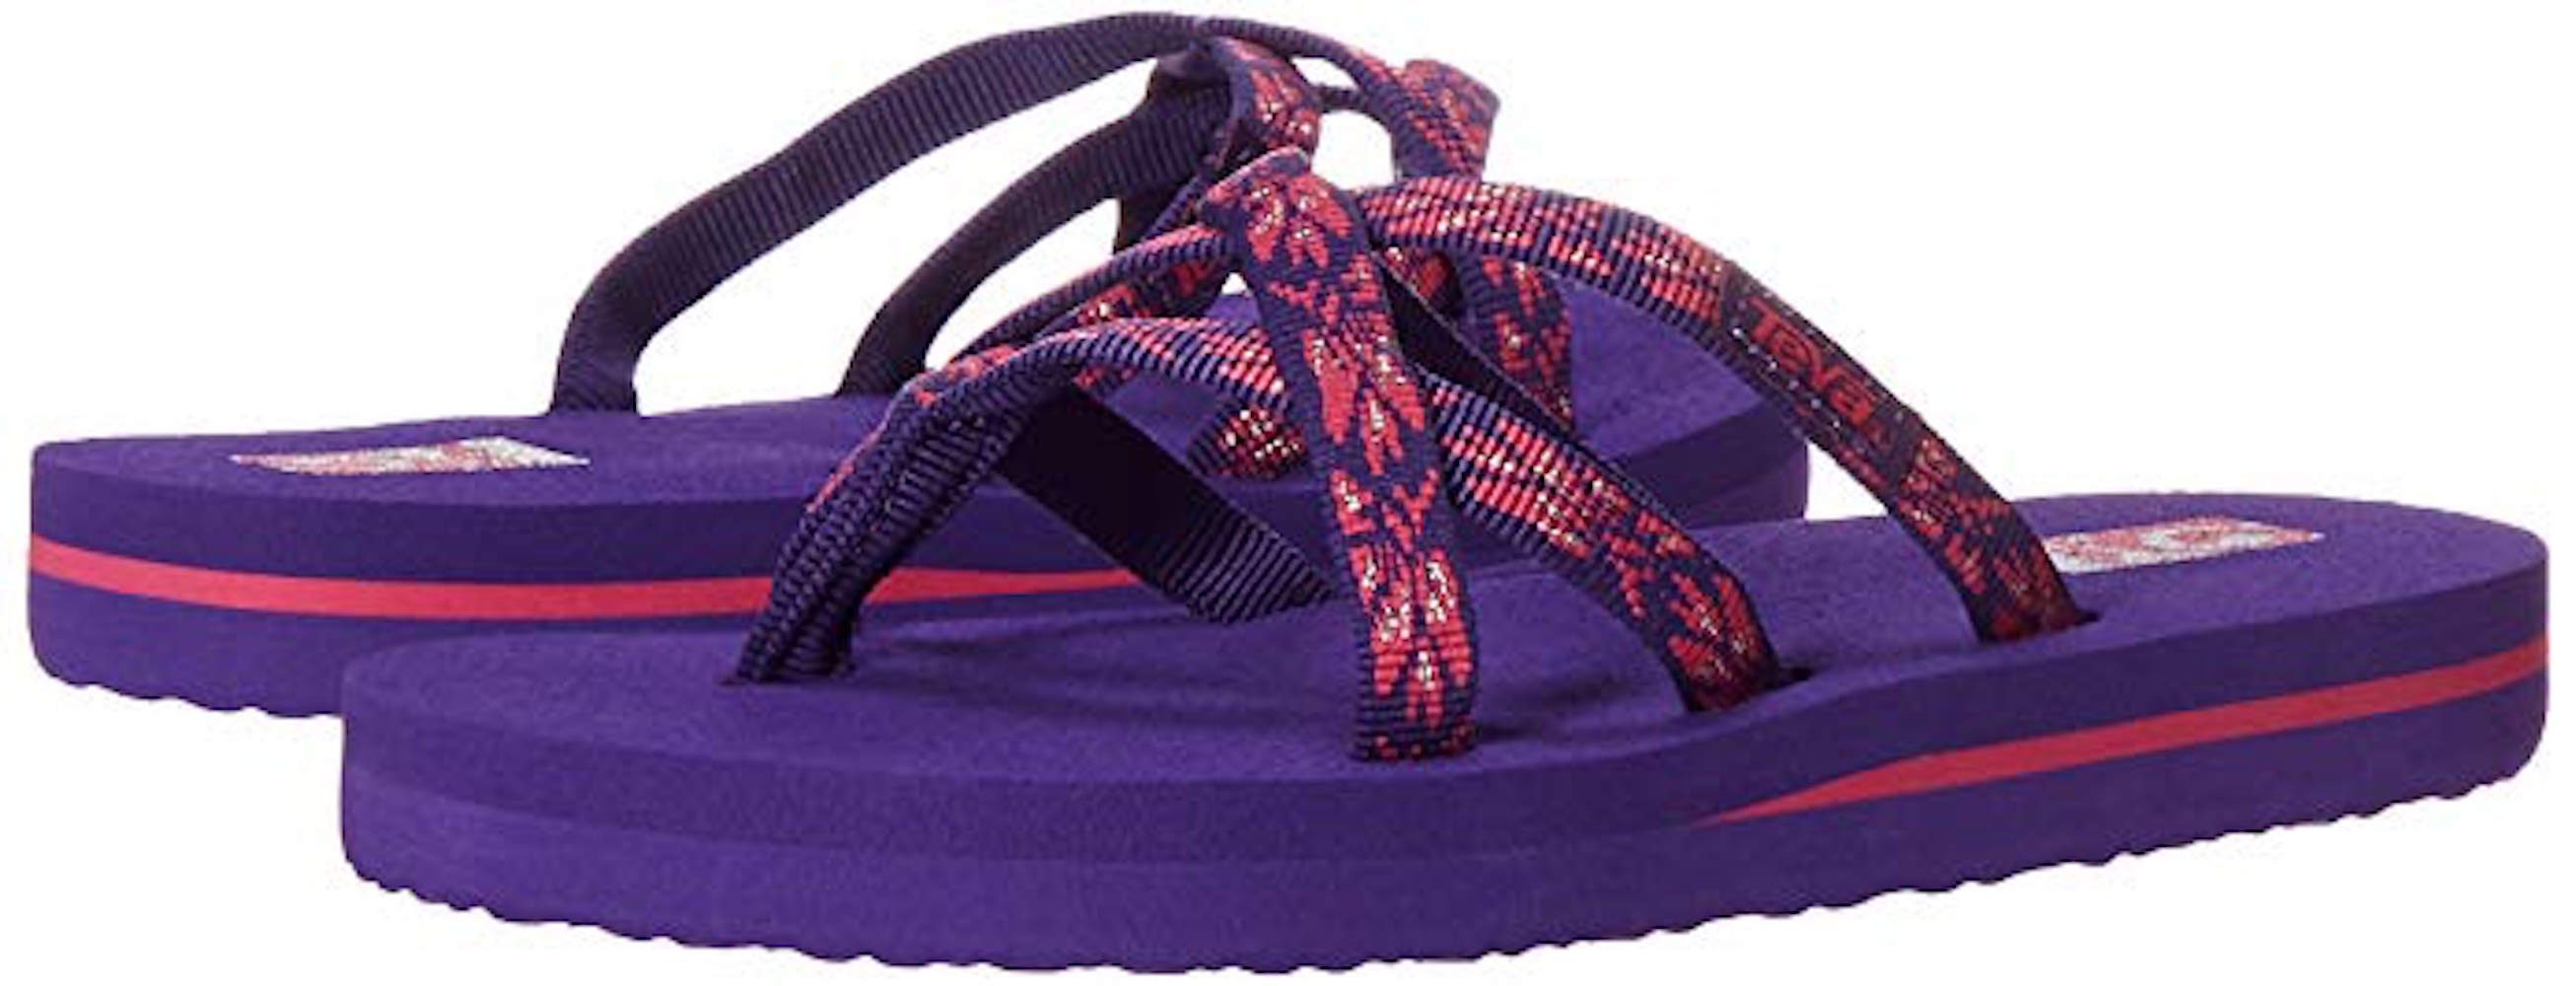 d8c00937ad83c7 Kids Teva Girls Olowahu Slip On Flip Flops